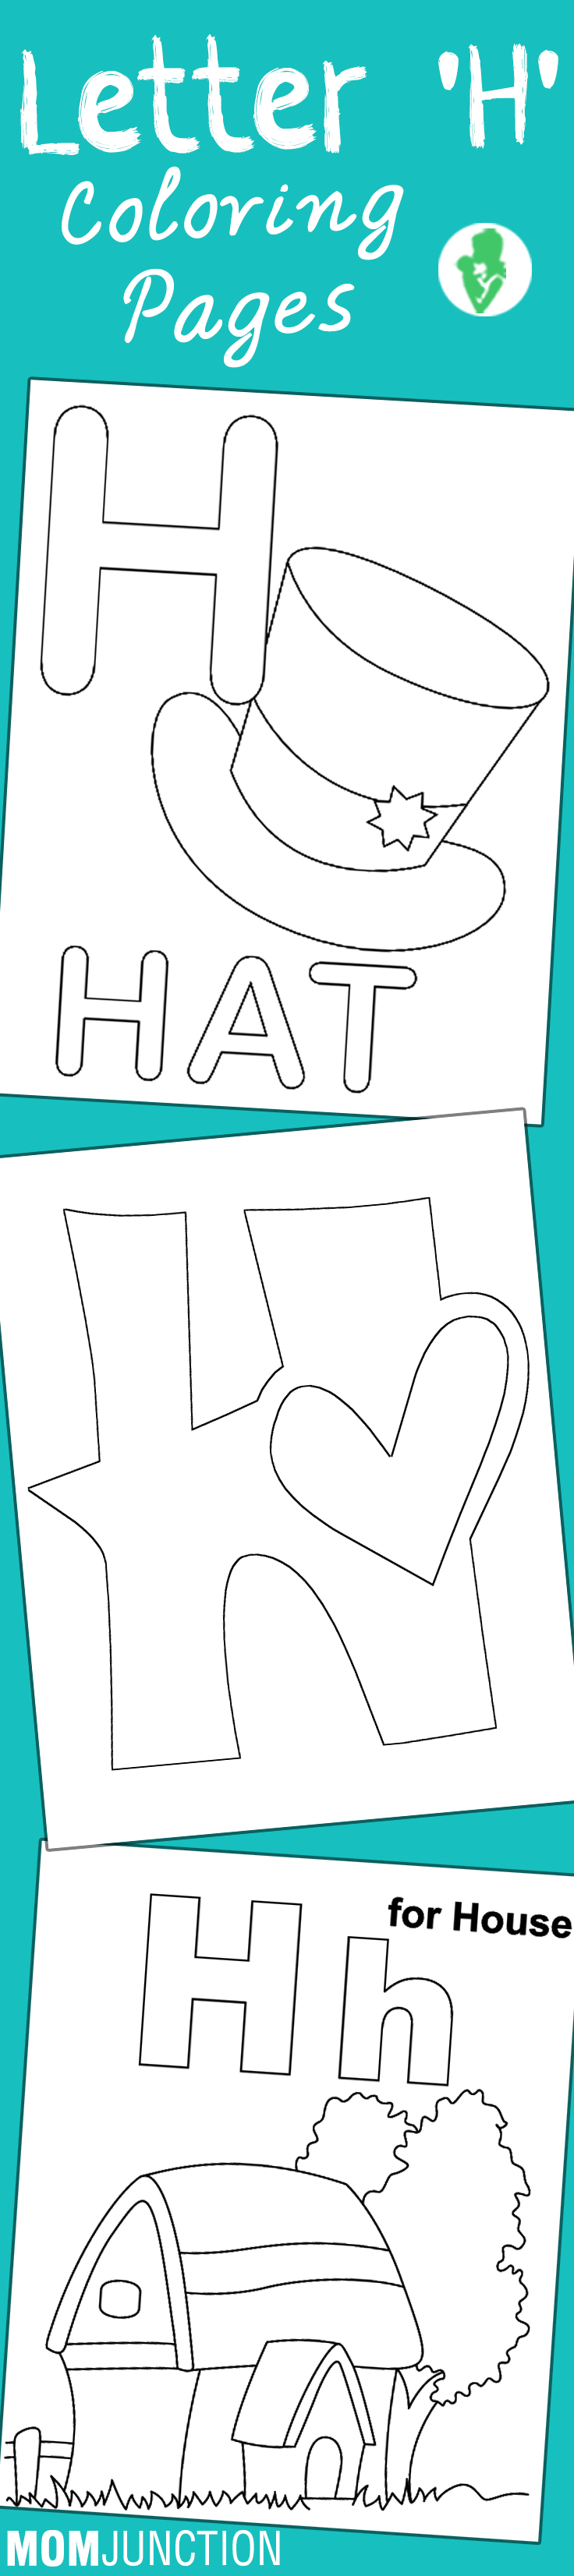 Free printable coloring pages letter h - Free Printable Coloring Pages Letter H 31